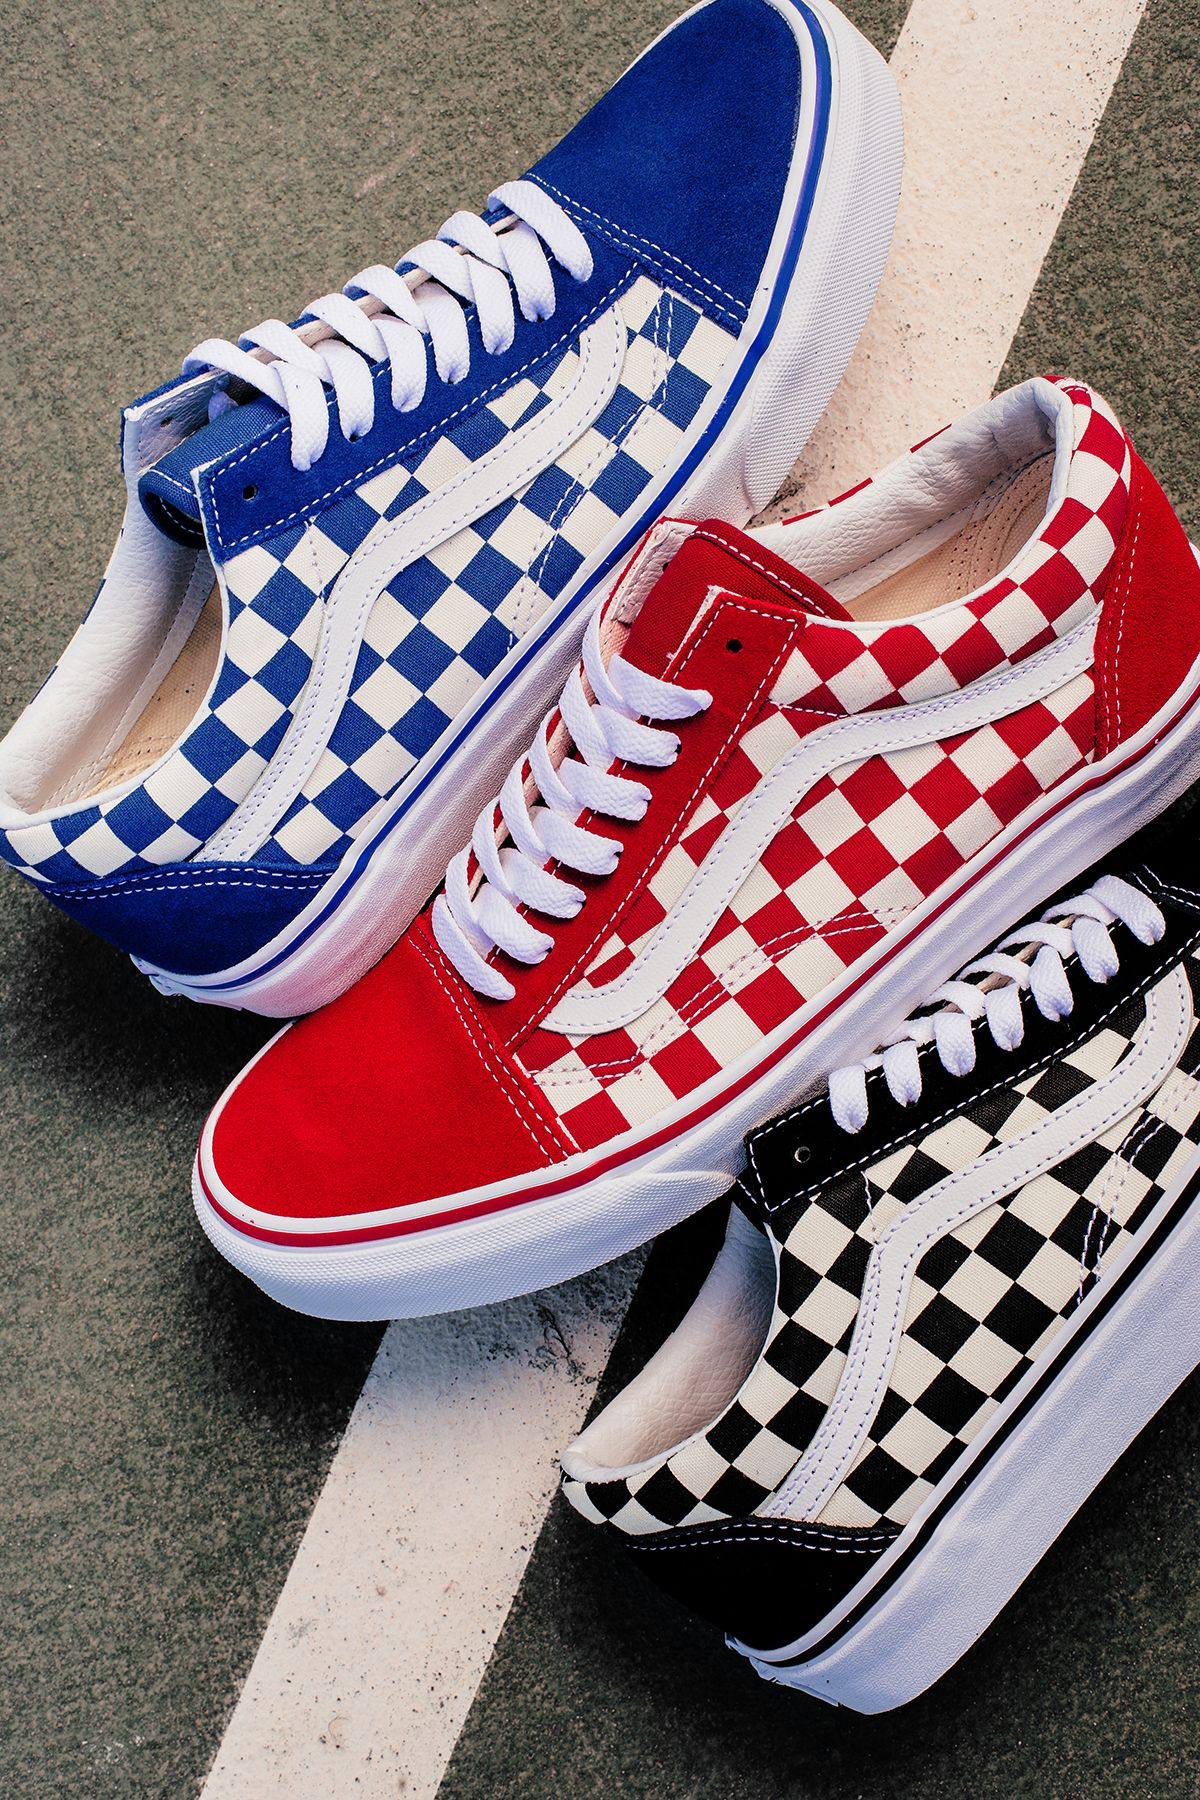 Old Skool Blue Checkerboard Vans | Vans boots, Sock shoes